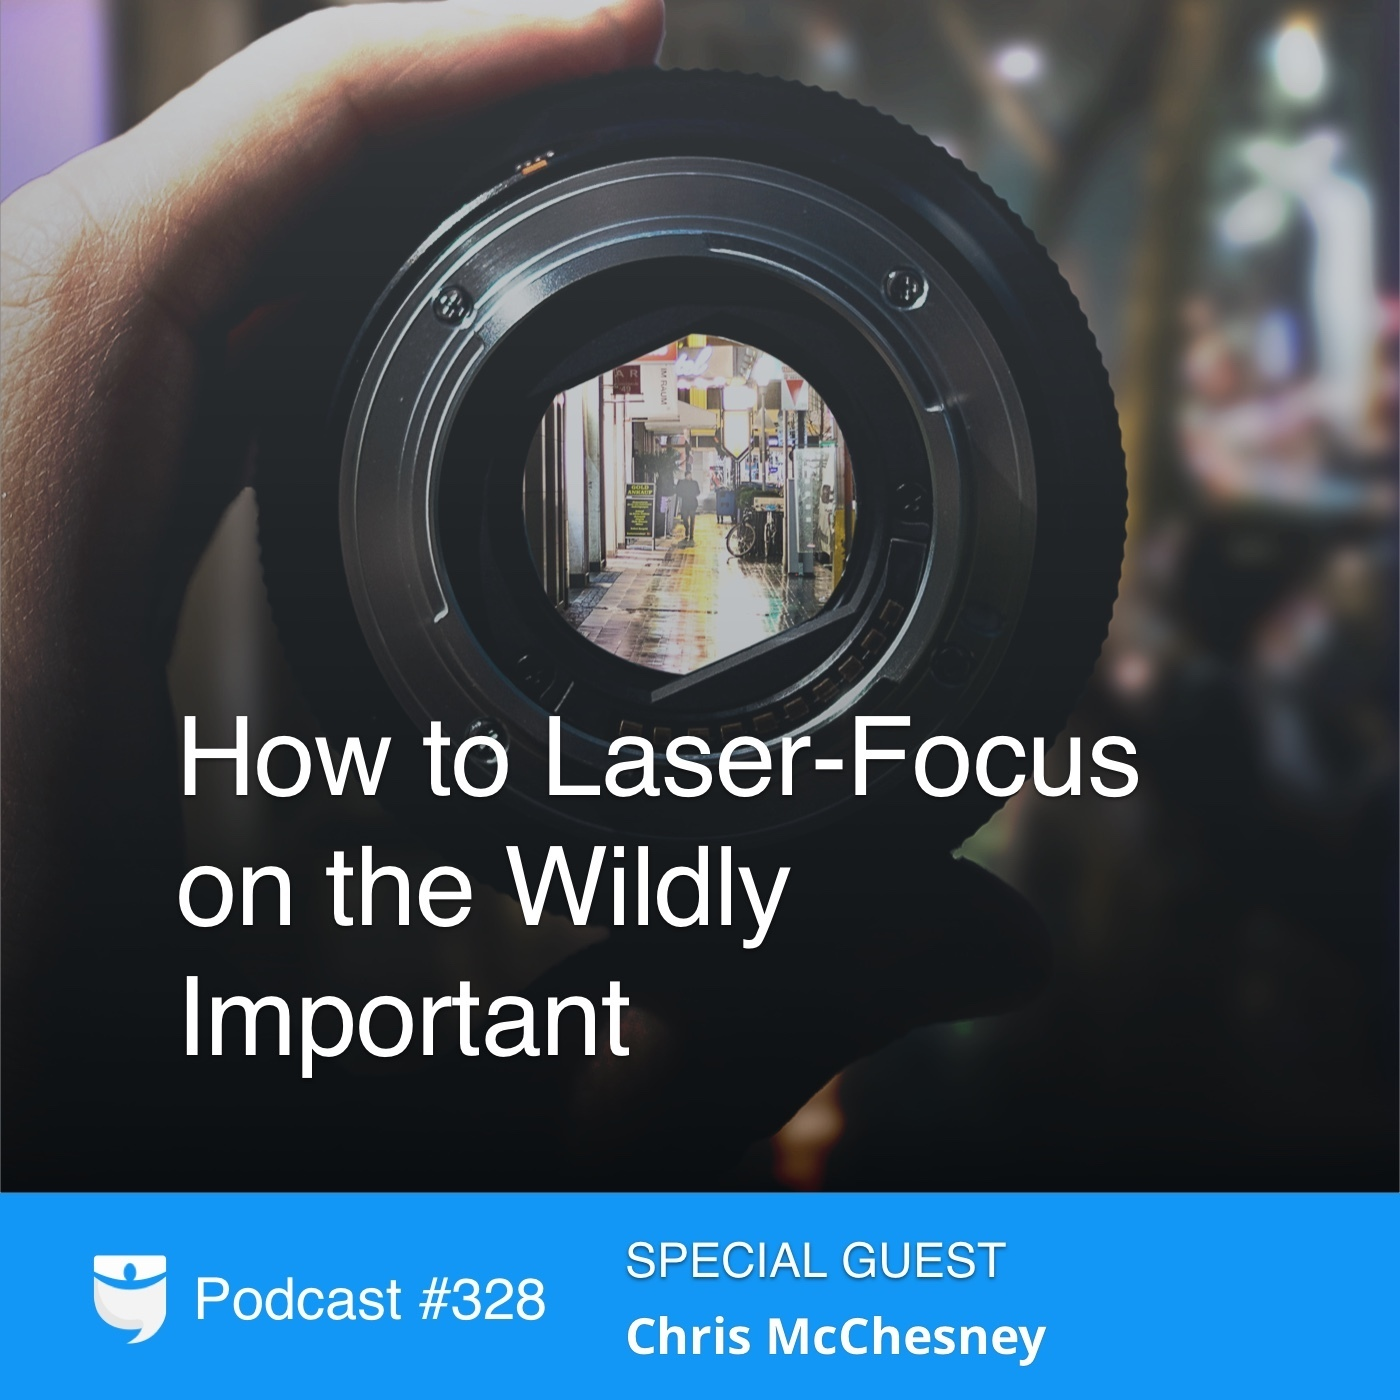 #328: How to Laser-Focus on the Wildly Important With Author Chris McChesney